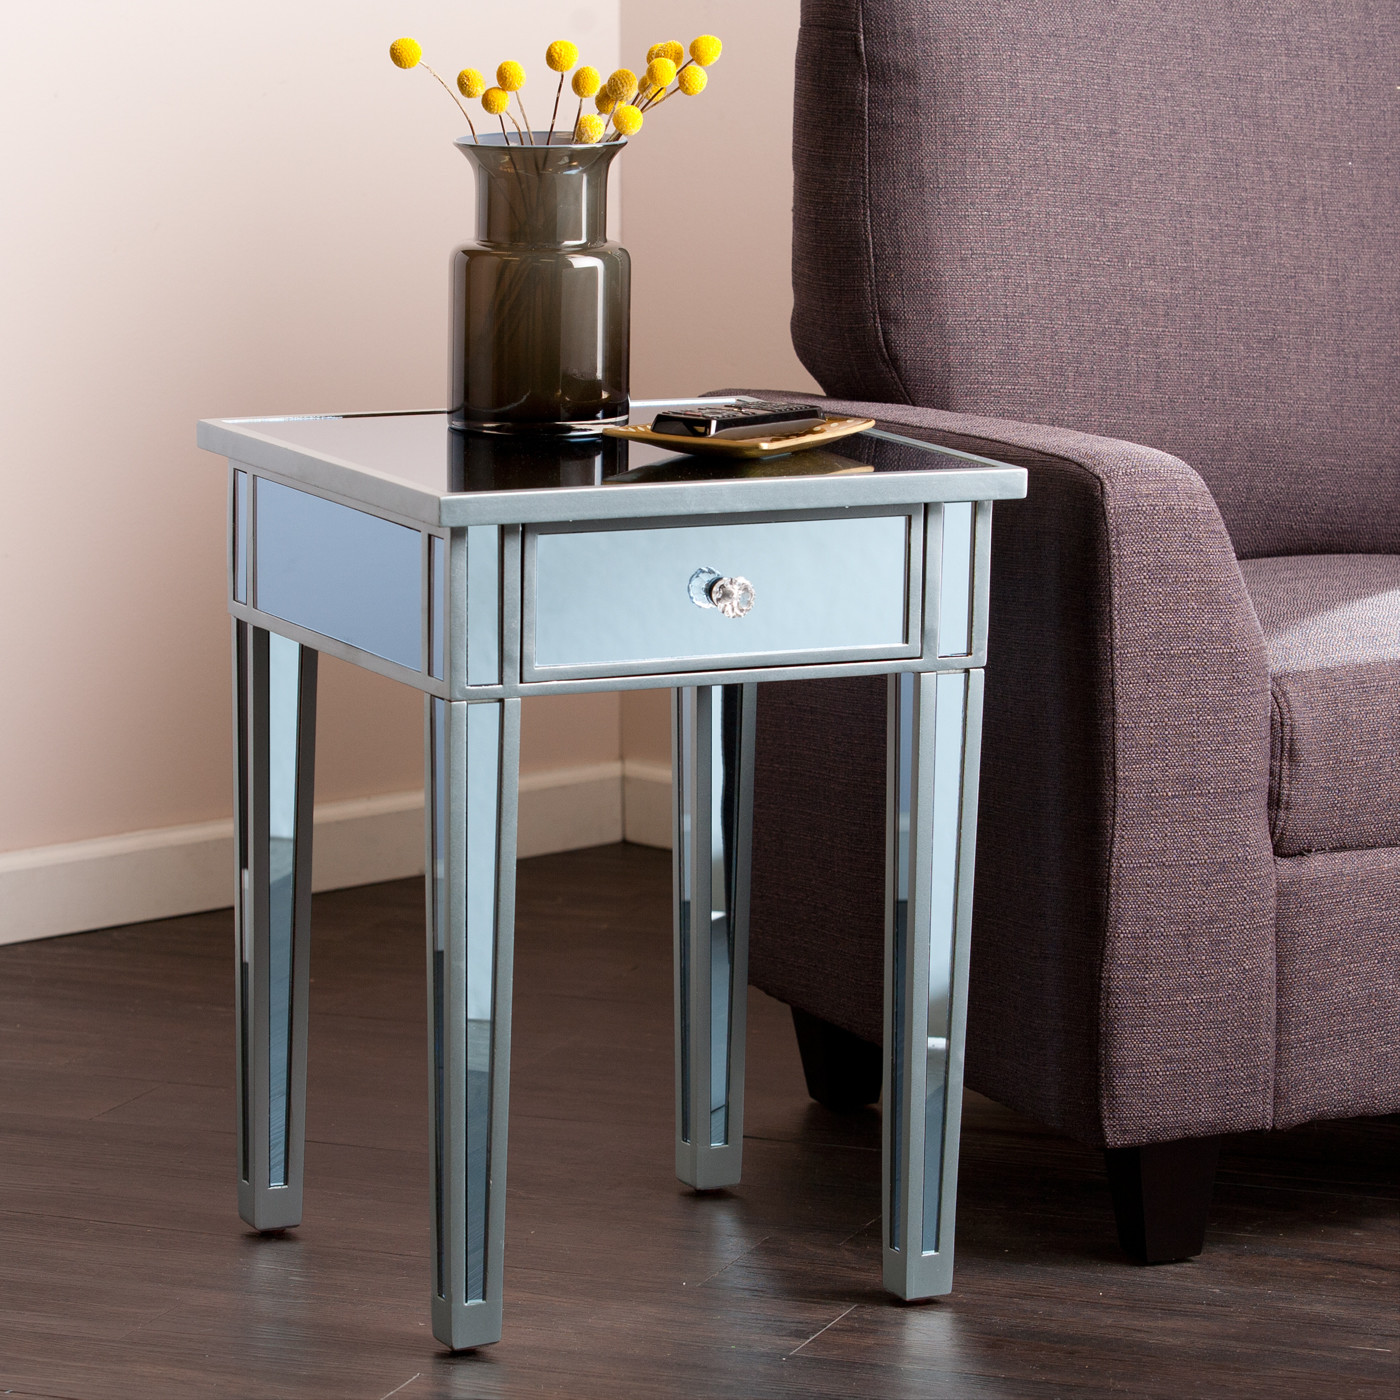 colorful small end tables interior design ideas tures shiny light blue accents single drawers unit glass table top rounded knob door flower vase mahogany wood flooring microfiber